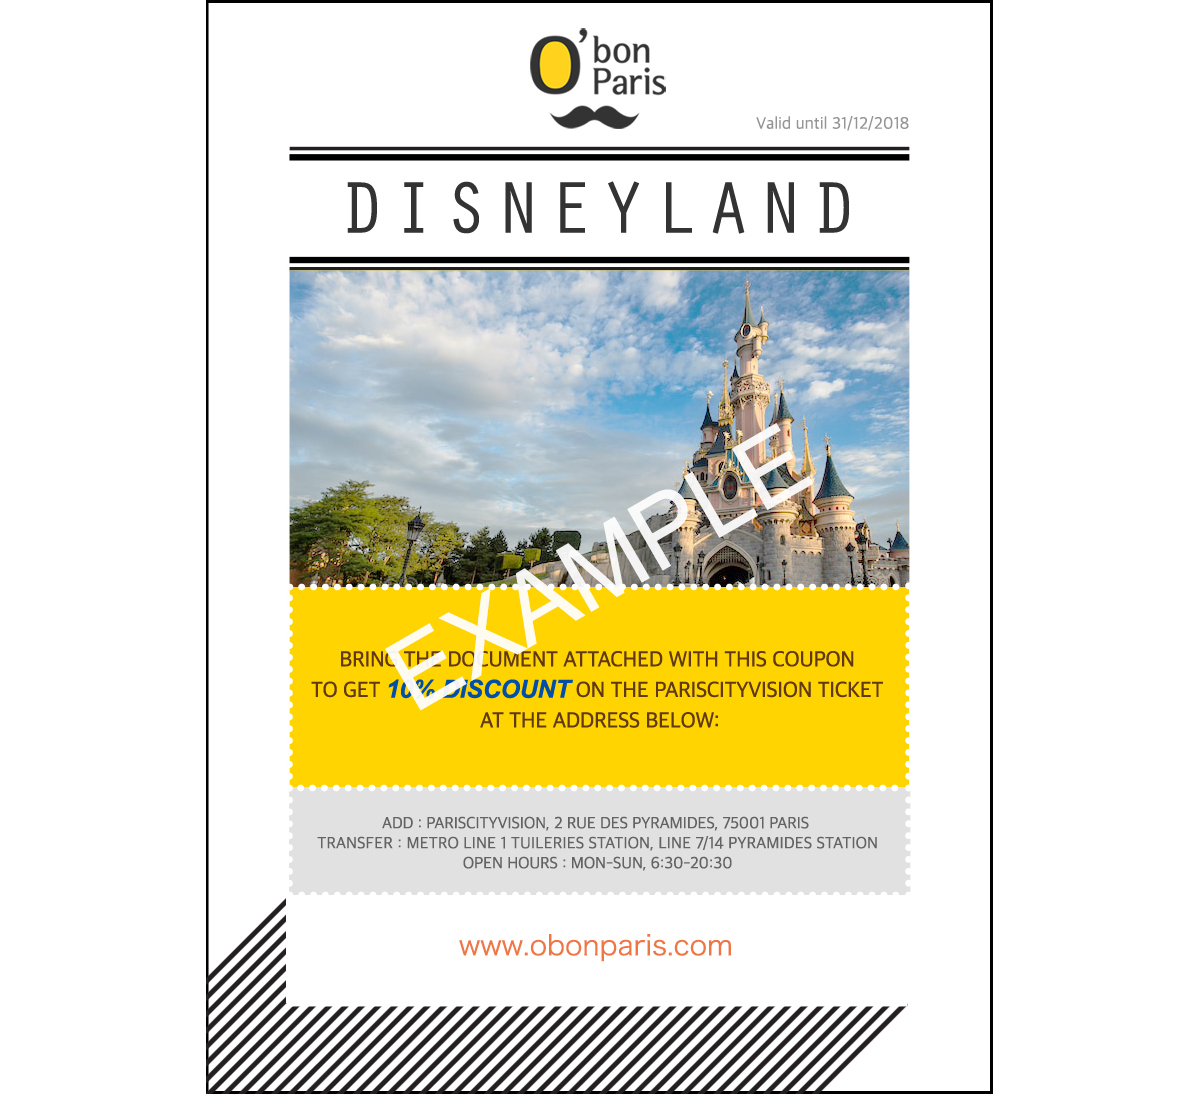 Thomas Cook (It's also worth looking out for a Thomas Cook voucher code) TravelSupermarket. Groupon voucher code. More Disneyland booking tips. Book Disneyland Paris tickets.